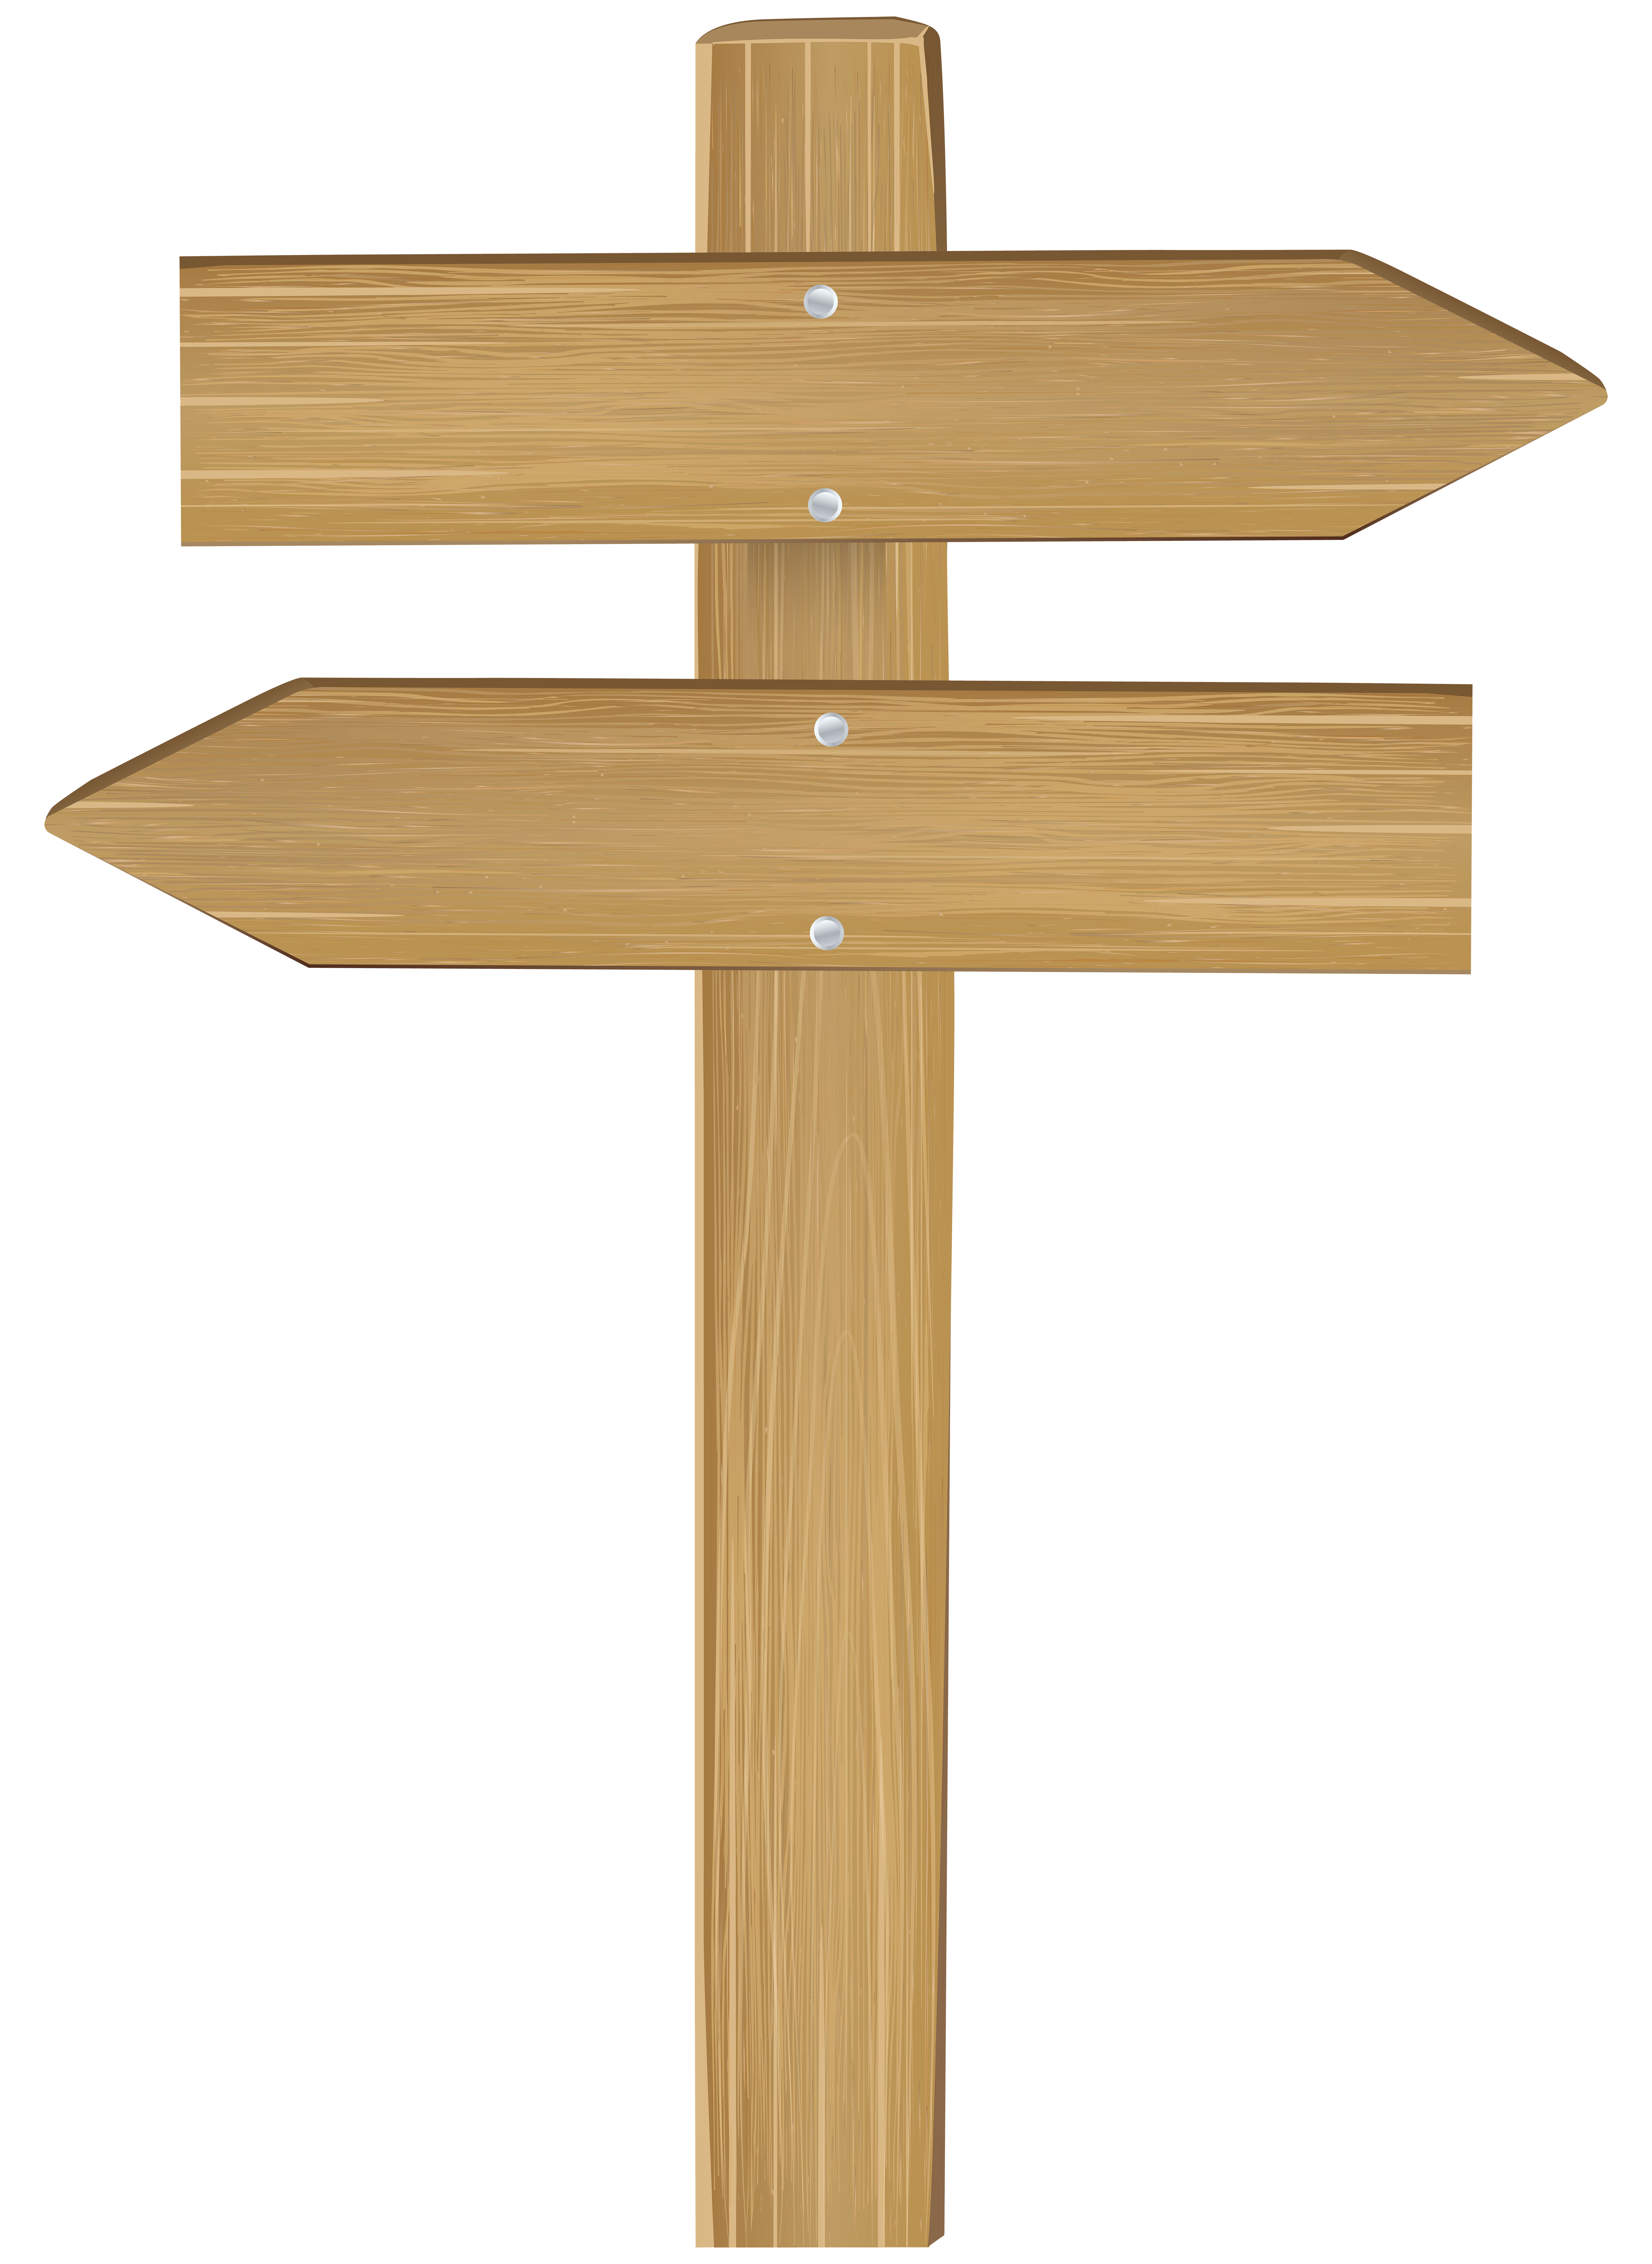 png royalty free stock Wooden arrow sign clipart. Double png clip art.